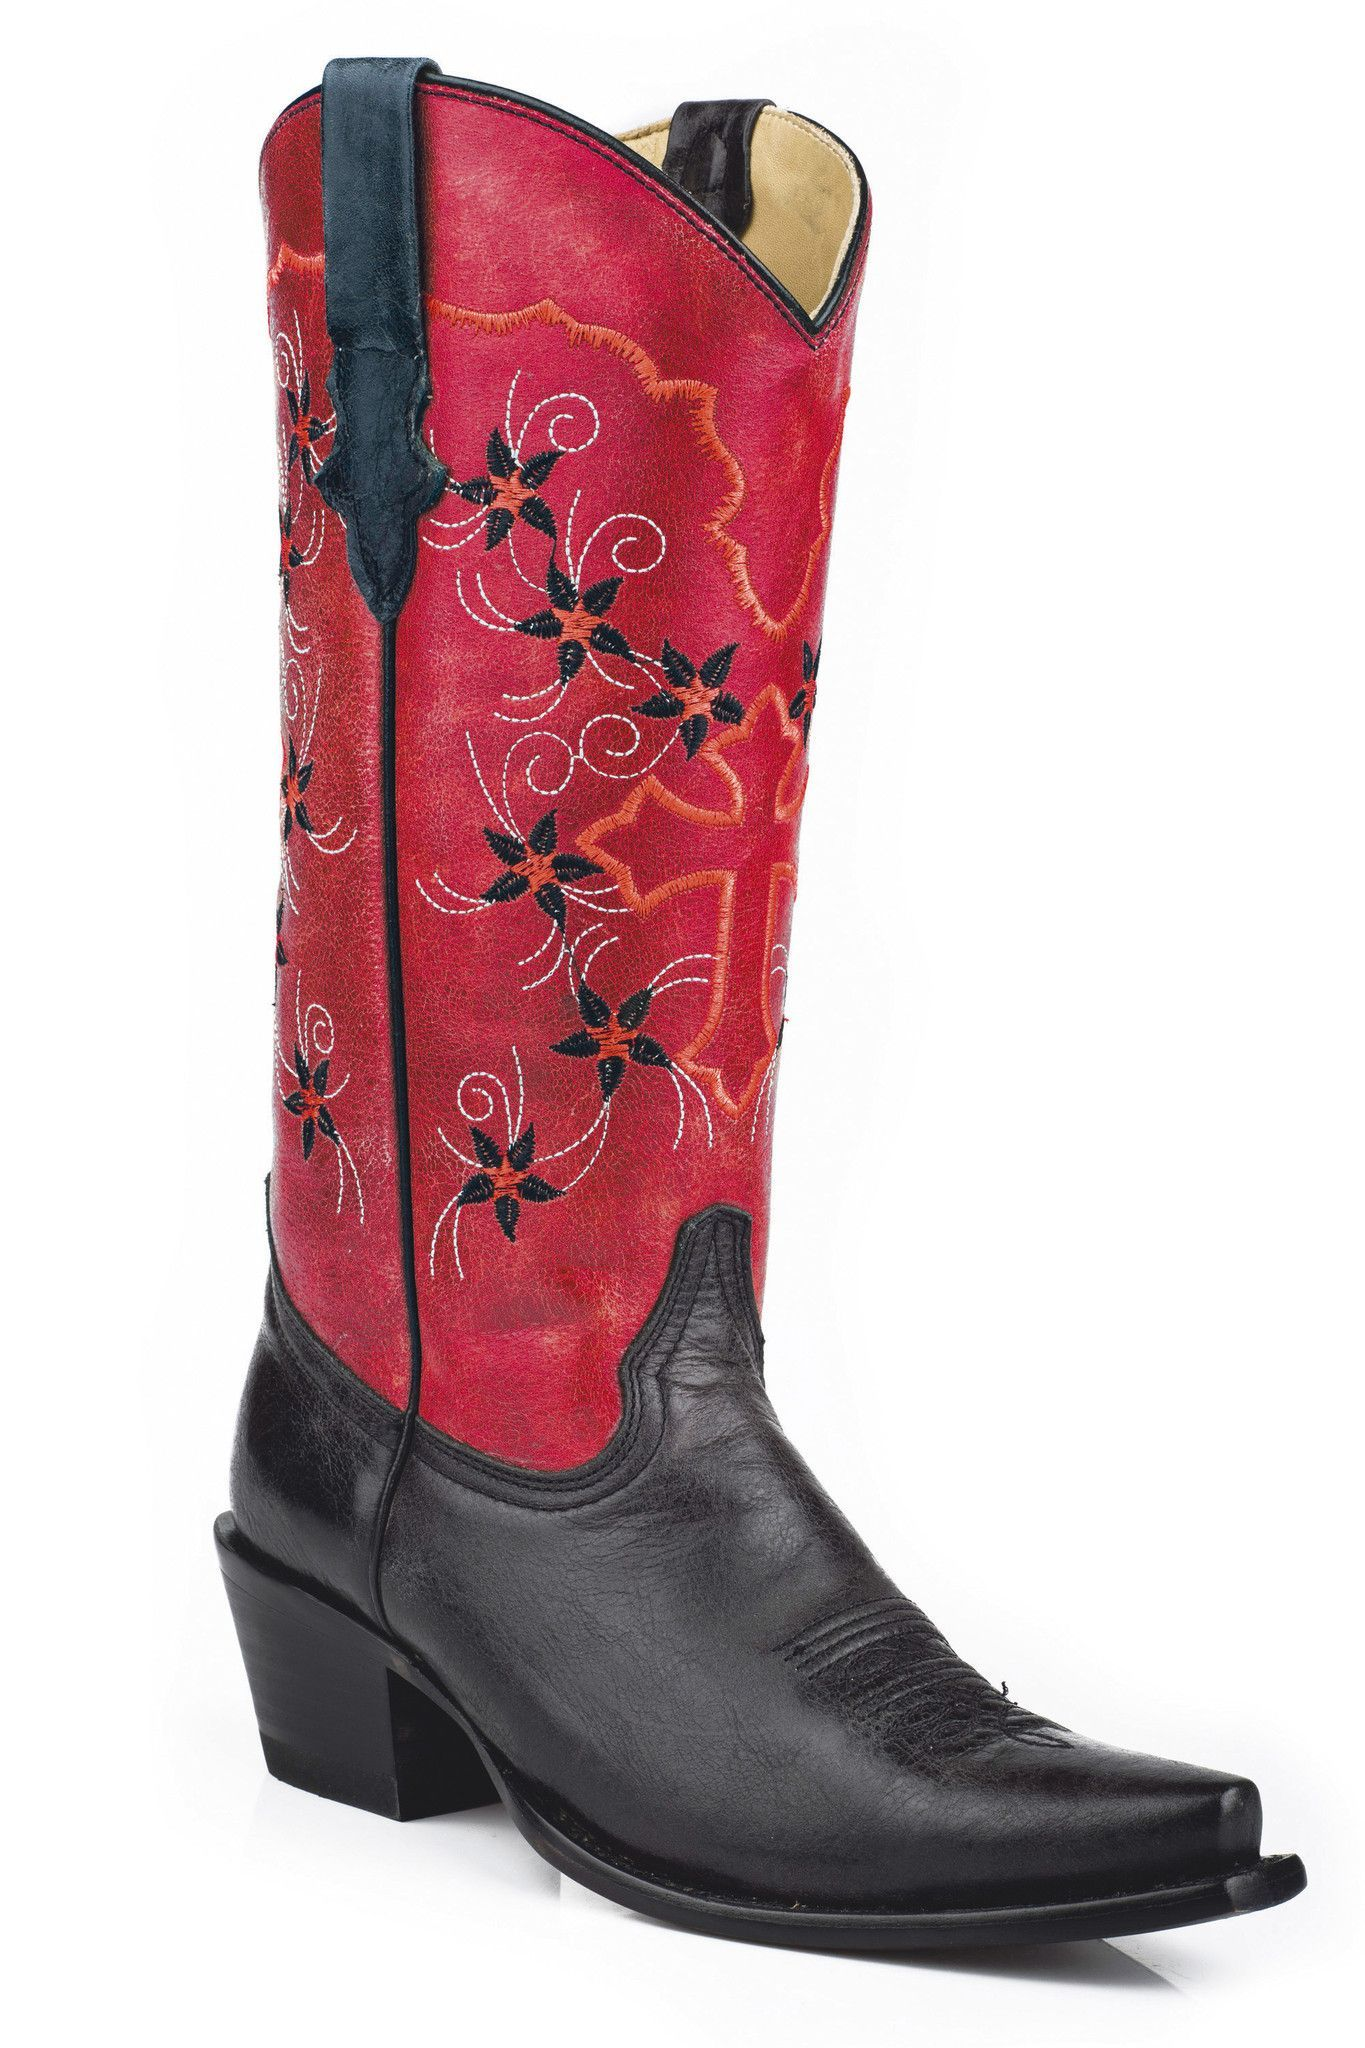 7b896902876 Stetson Ladies Fashion Snip Toe Boots Black Vamp Red Shaft With ...